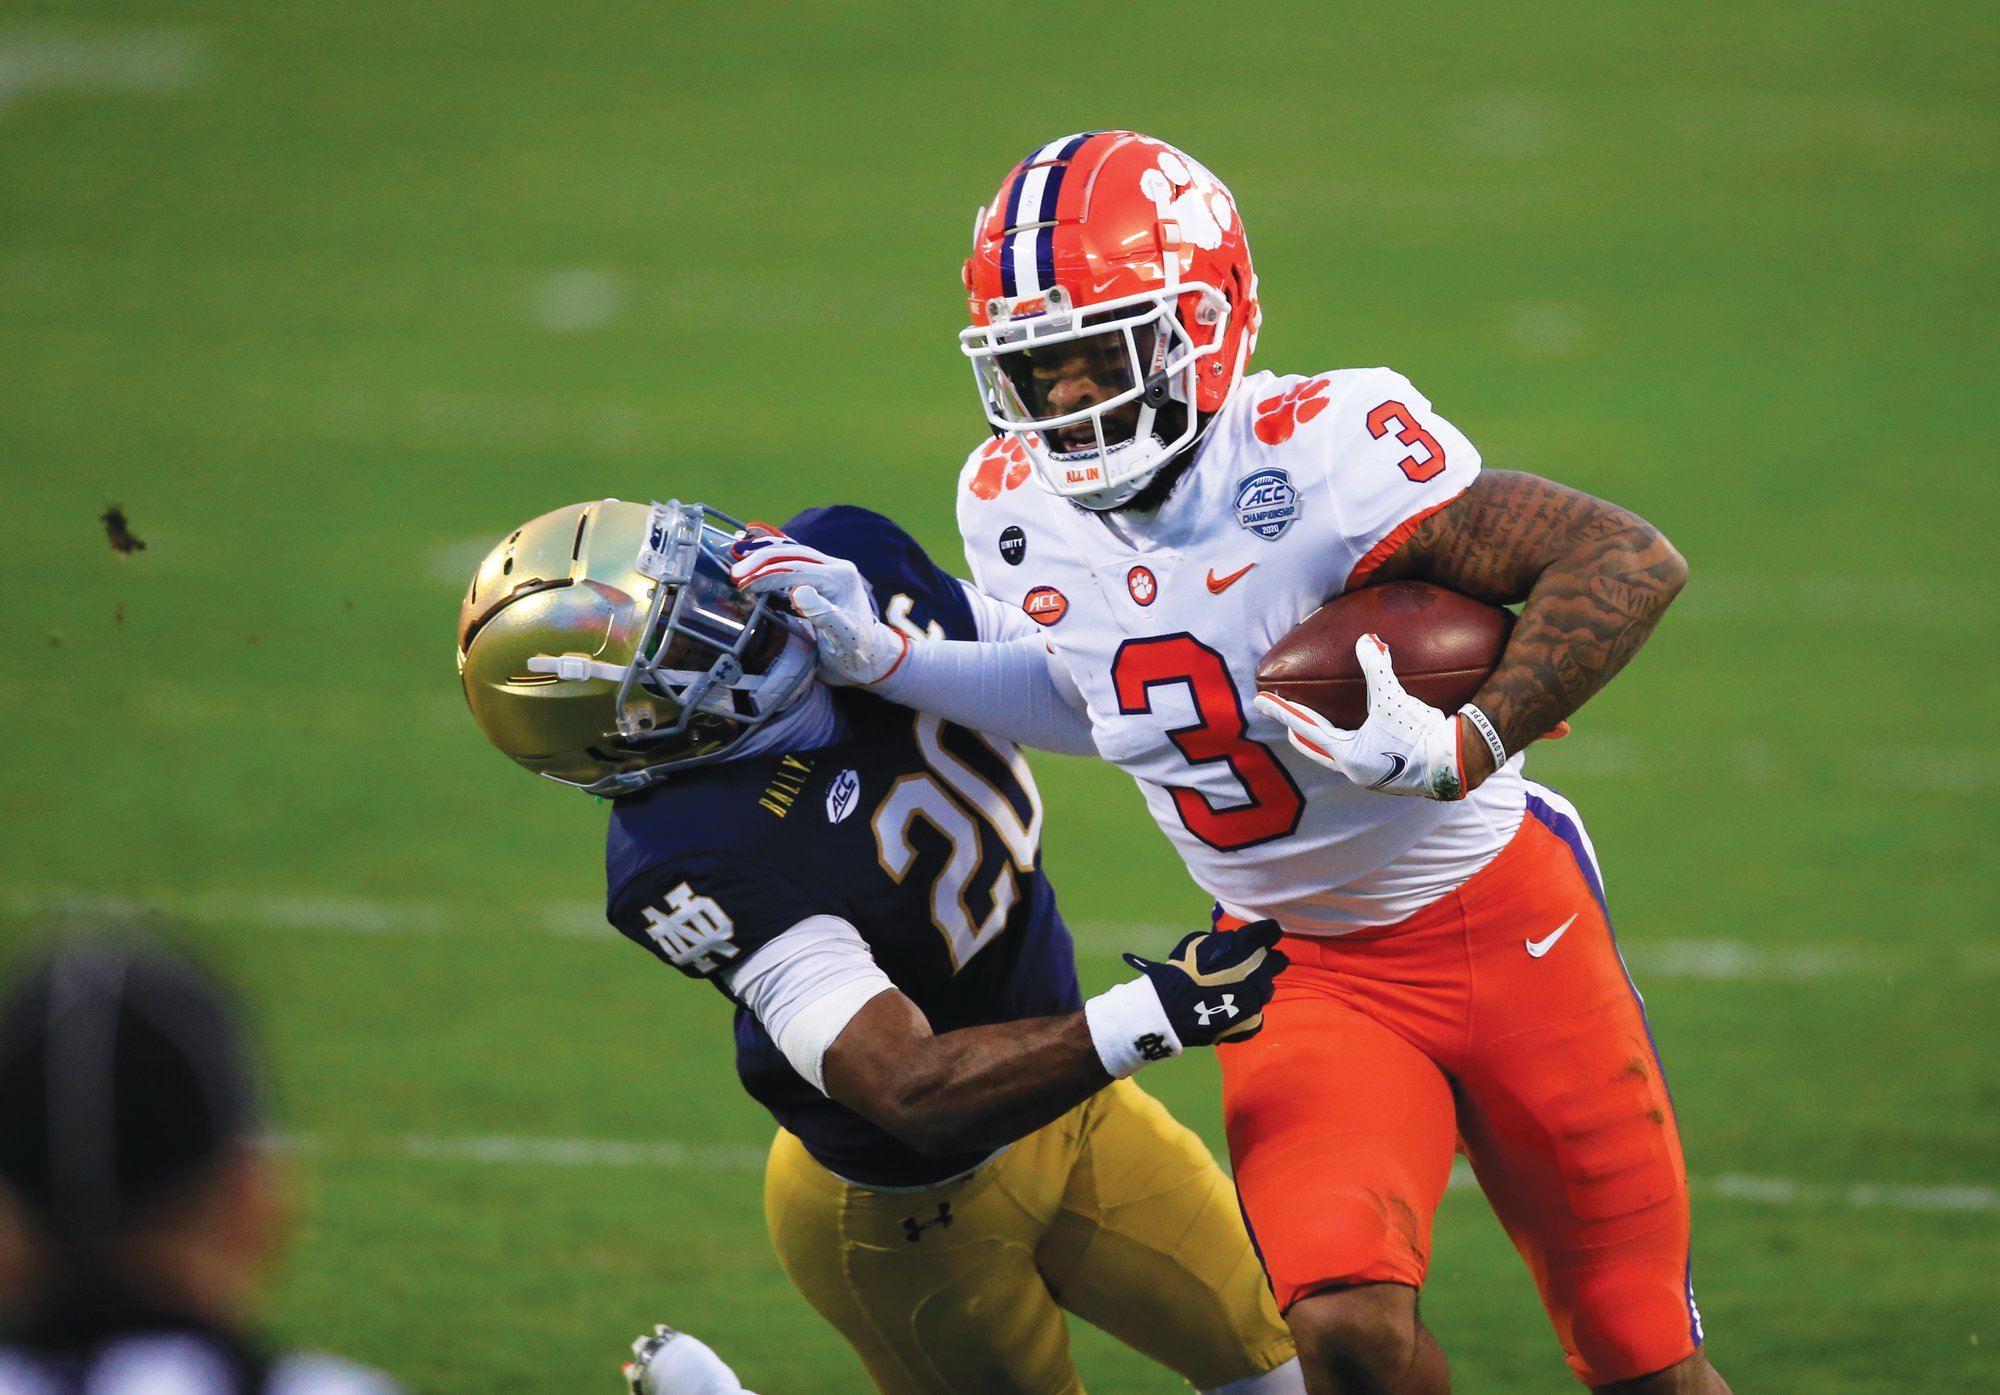 Clemson wide receiver Amari Rodgers (3) and the Tigers will face Ohio State in the Sugar Bowl on Friday.